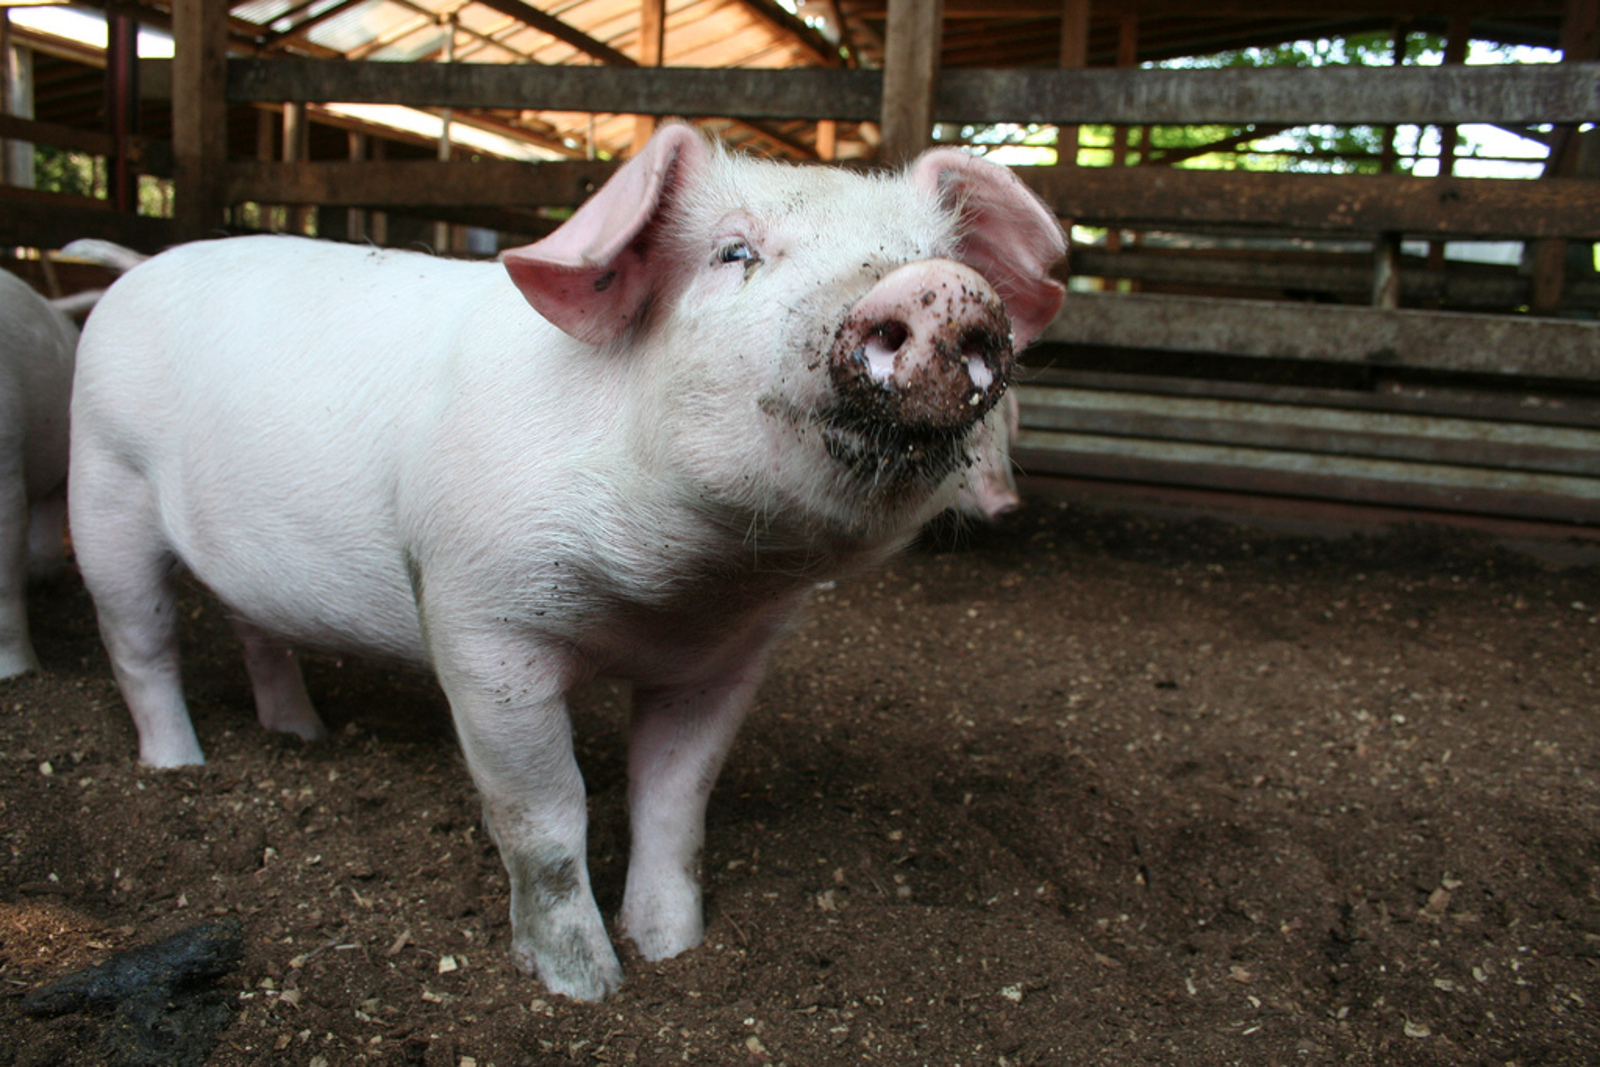 9 States That Have Banned Gestation Crates